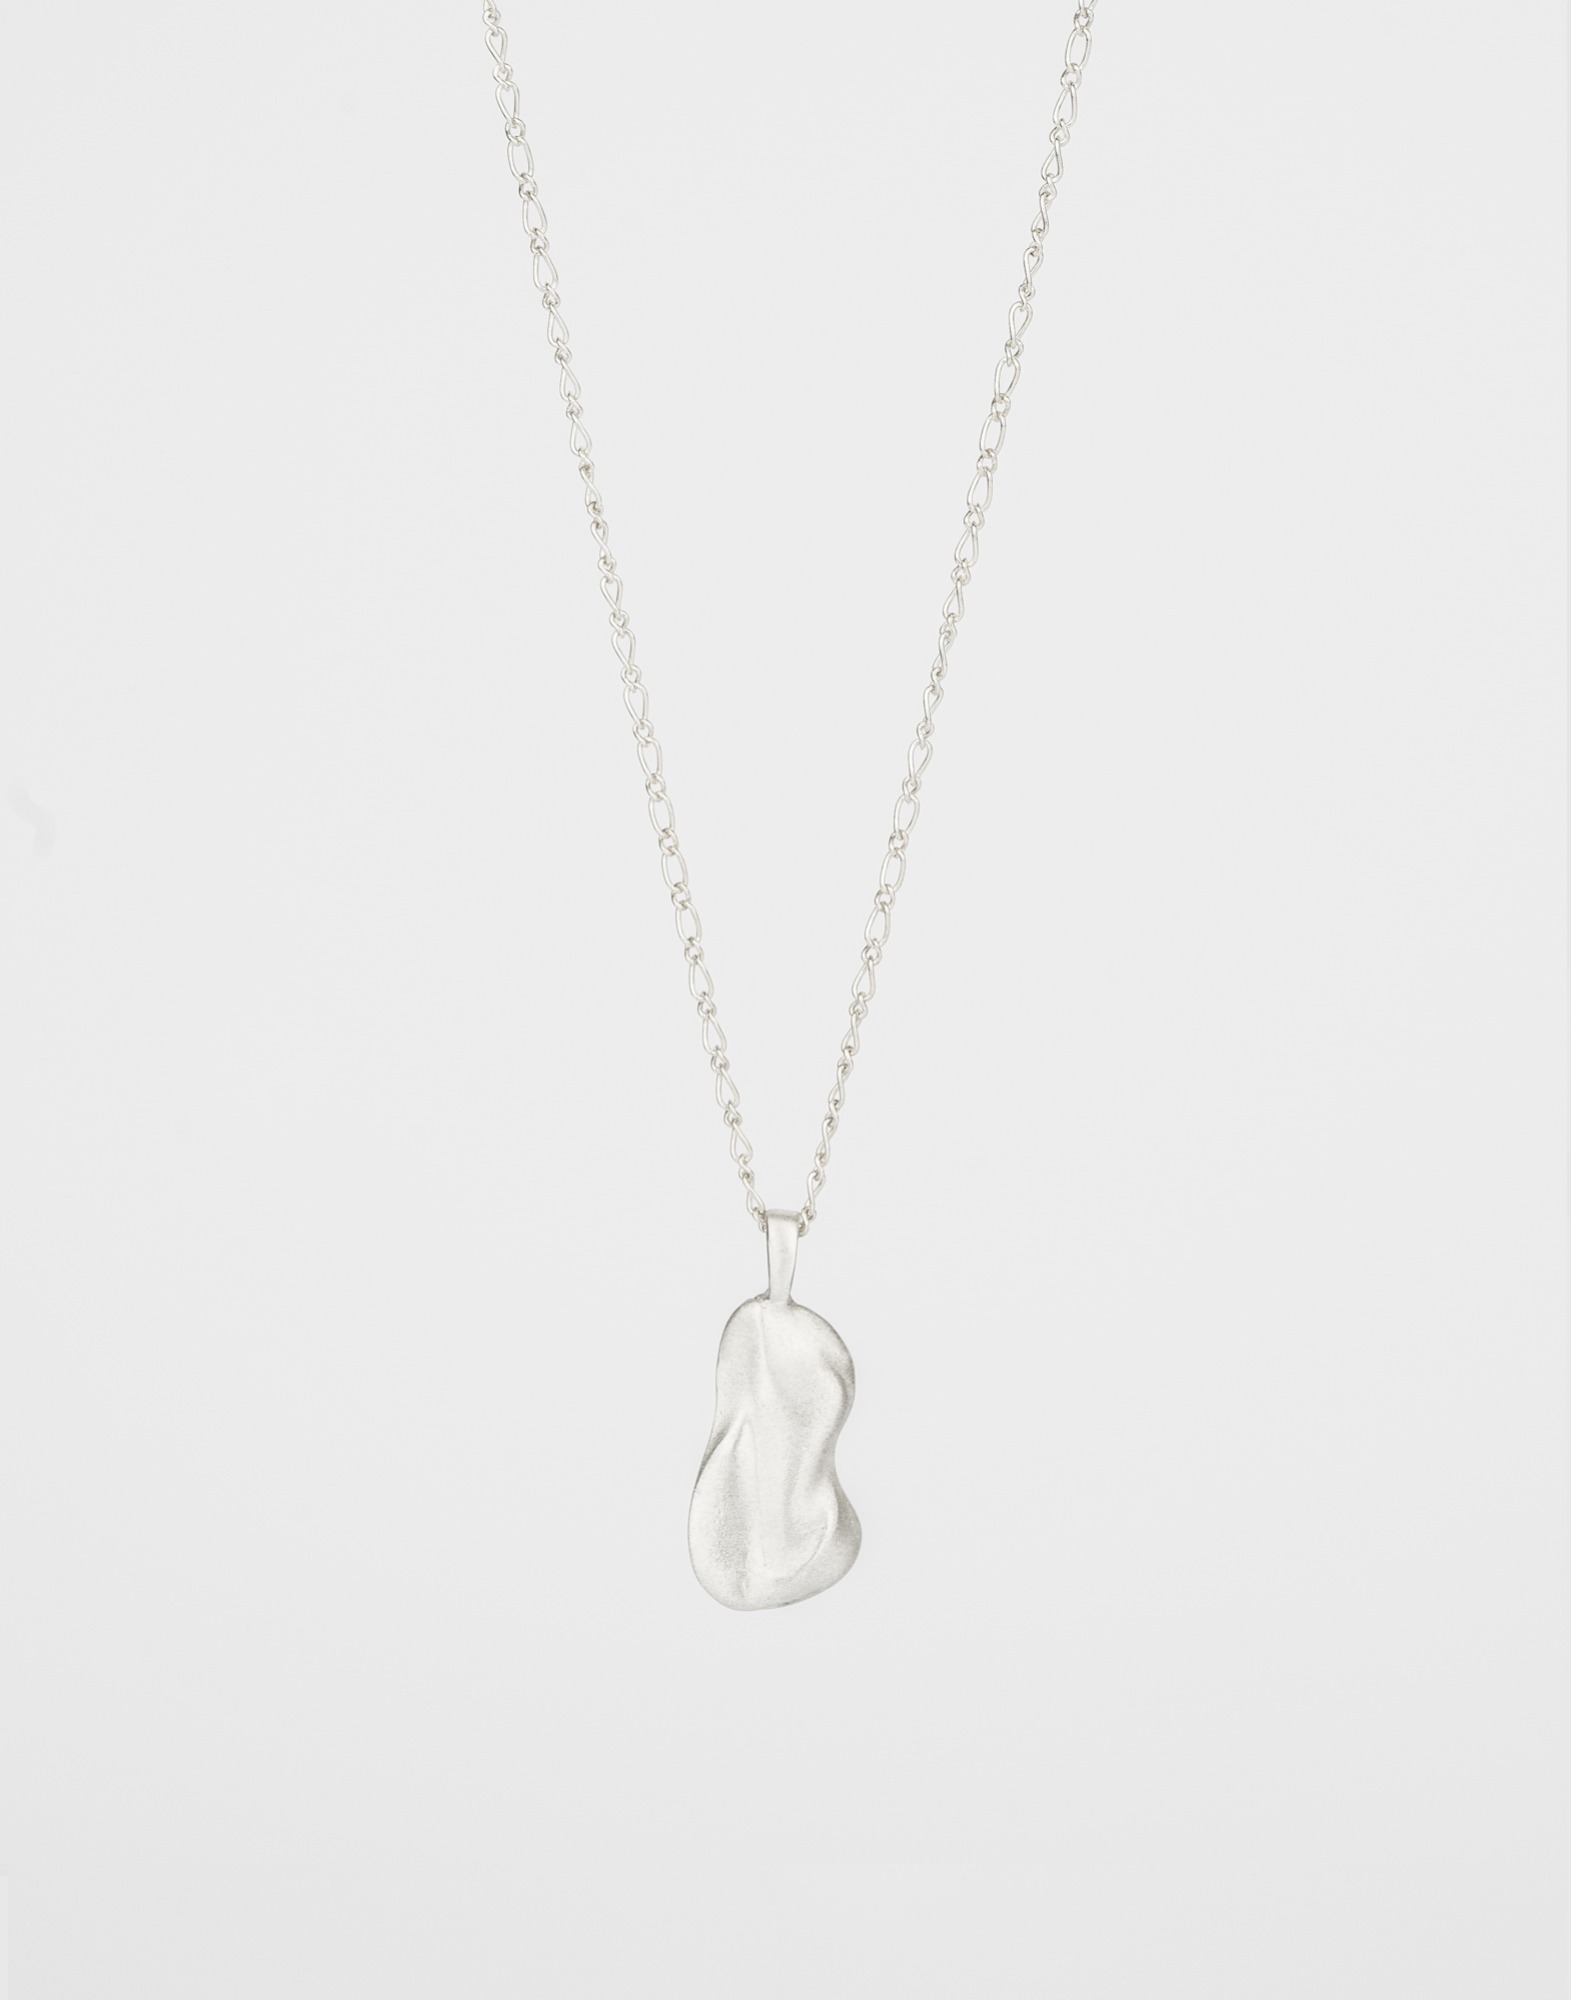 999 silver base body necklace